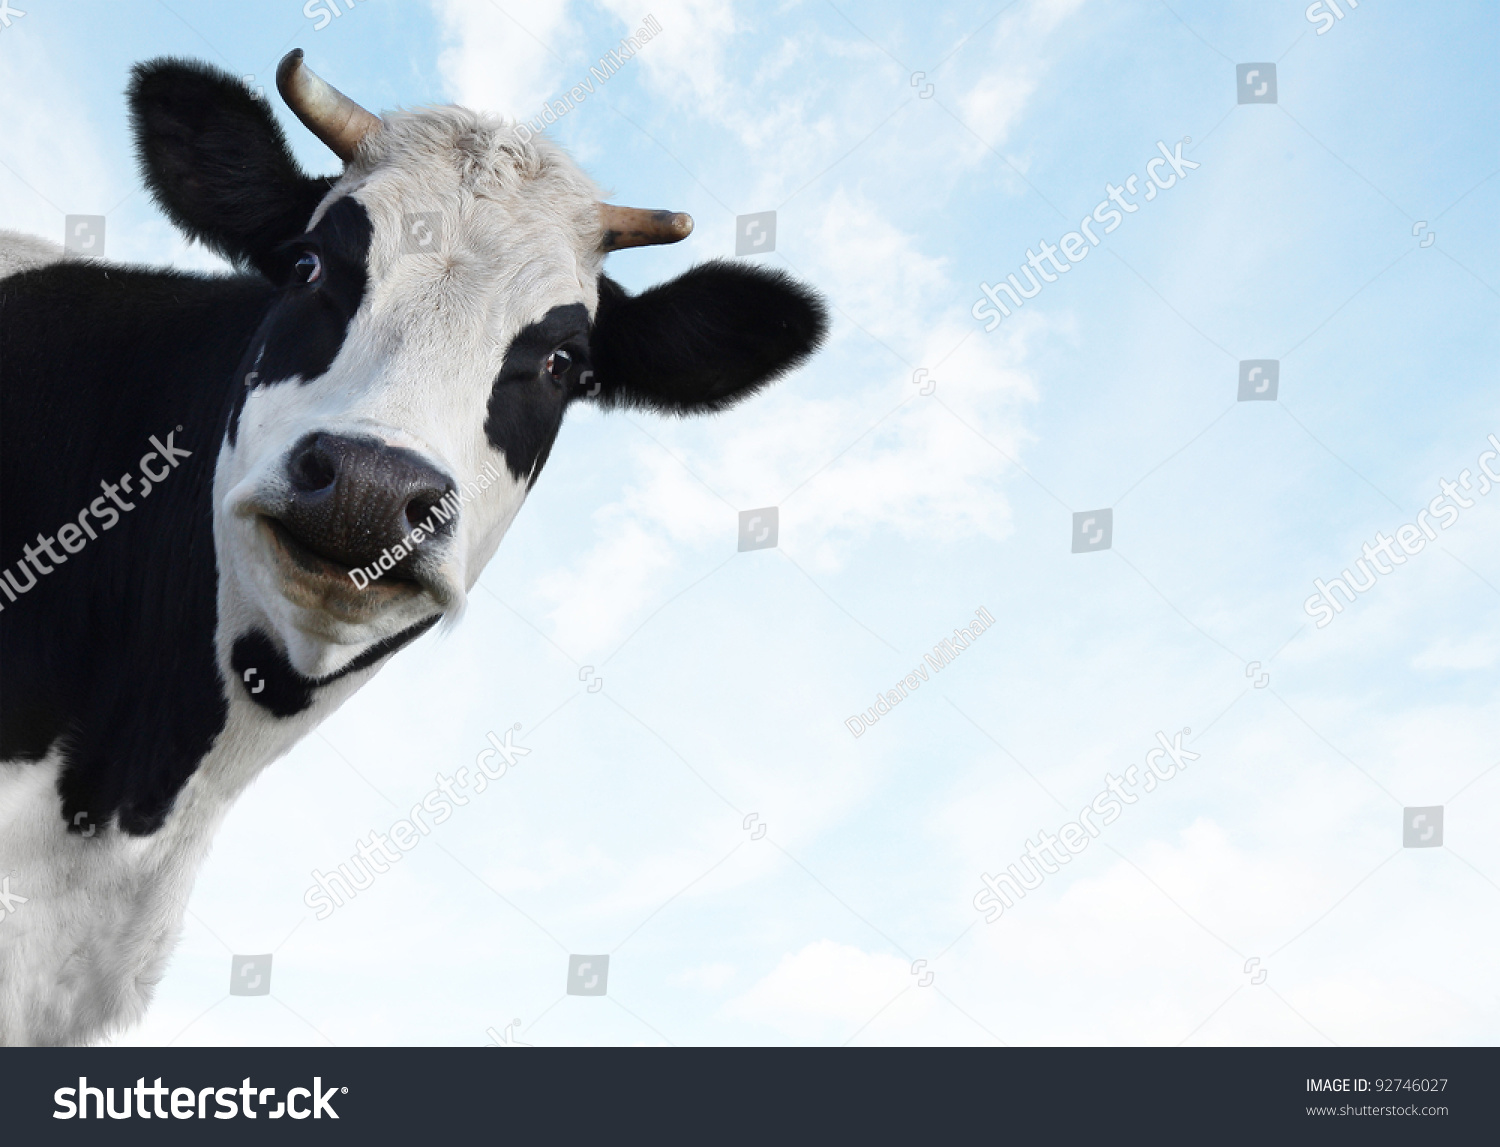 Funny cow smiling - photo#8